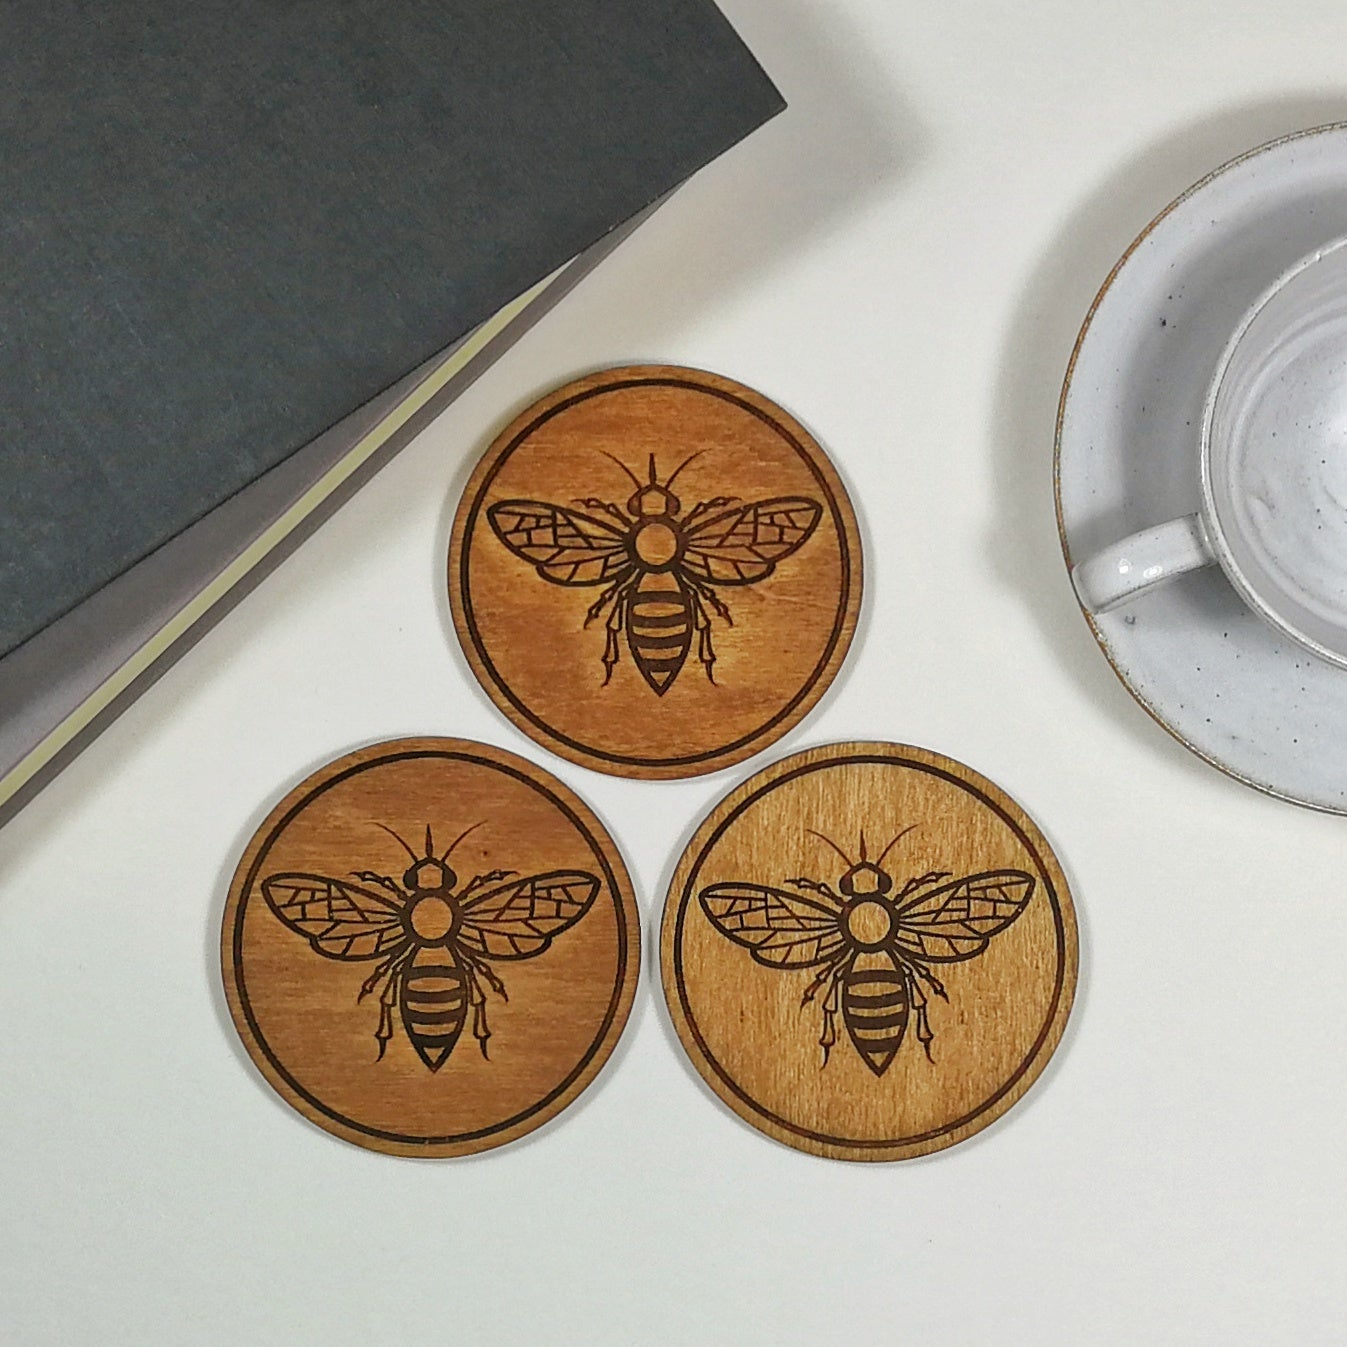 Image of Engraved Bee Wooden Drinks Coasters - set of 4.